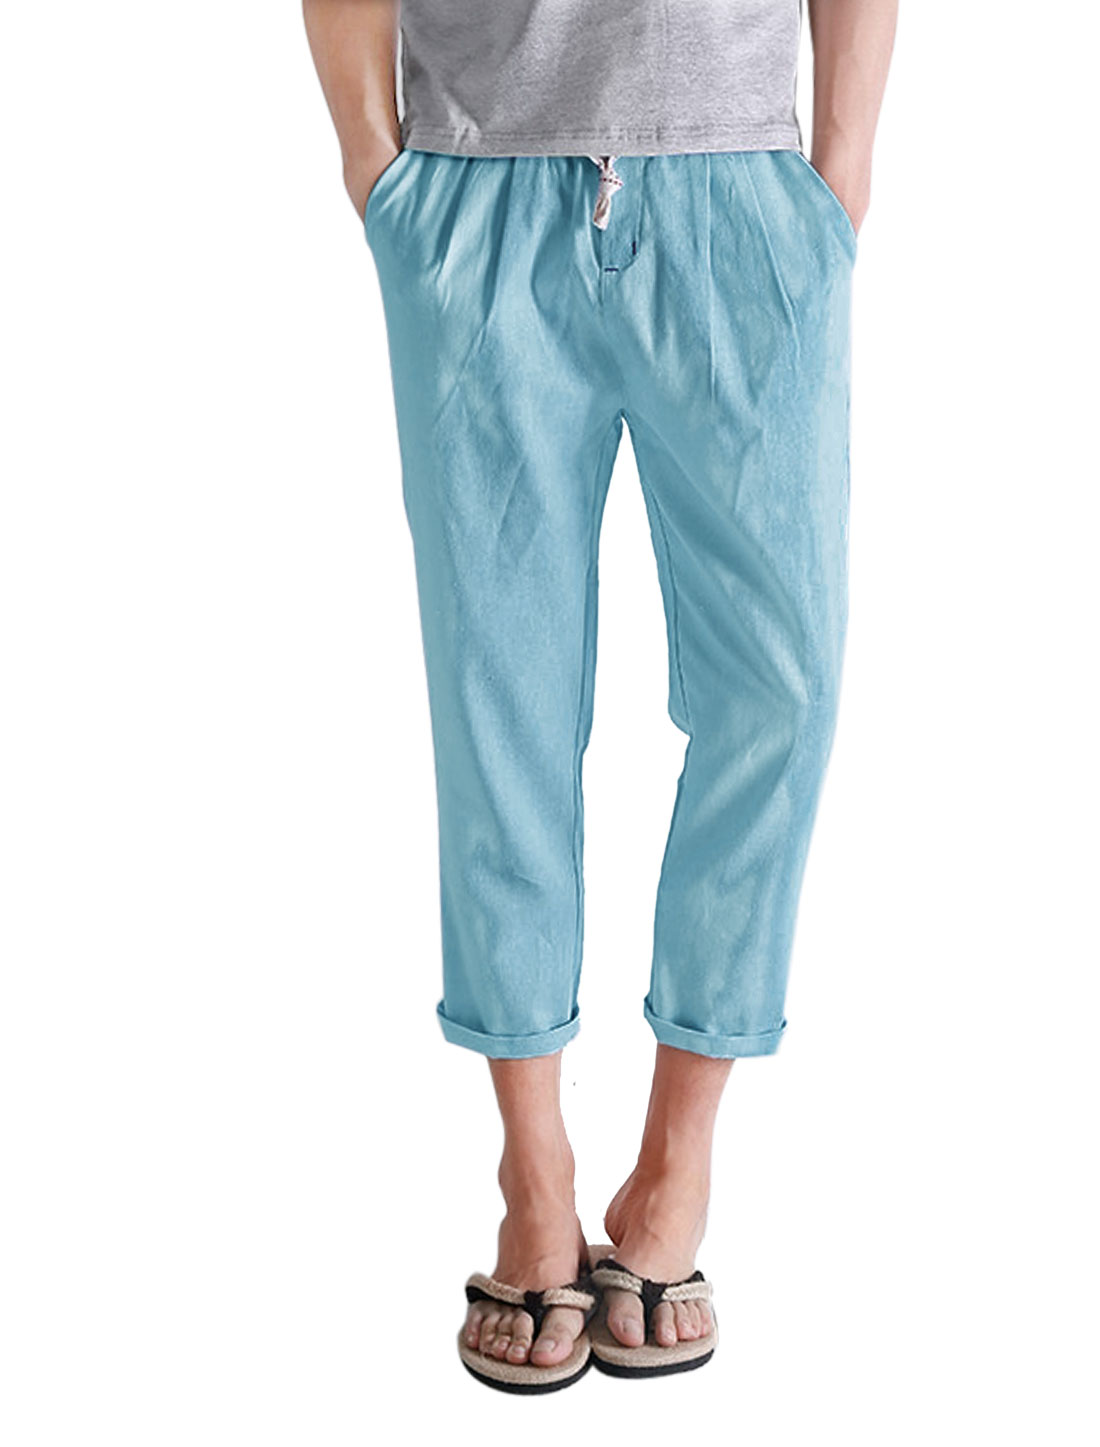 Men Drawstring Waist Mid Rise Linen Casual Cropped Pants Light Blue W30